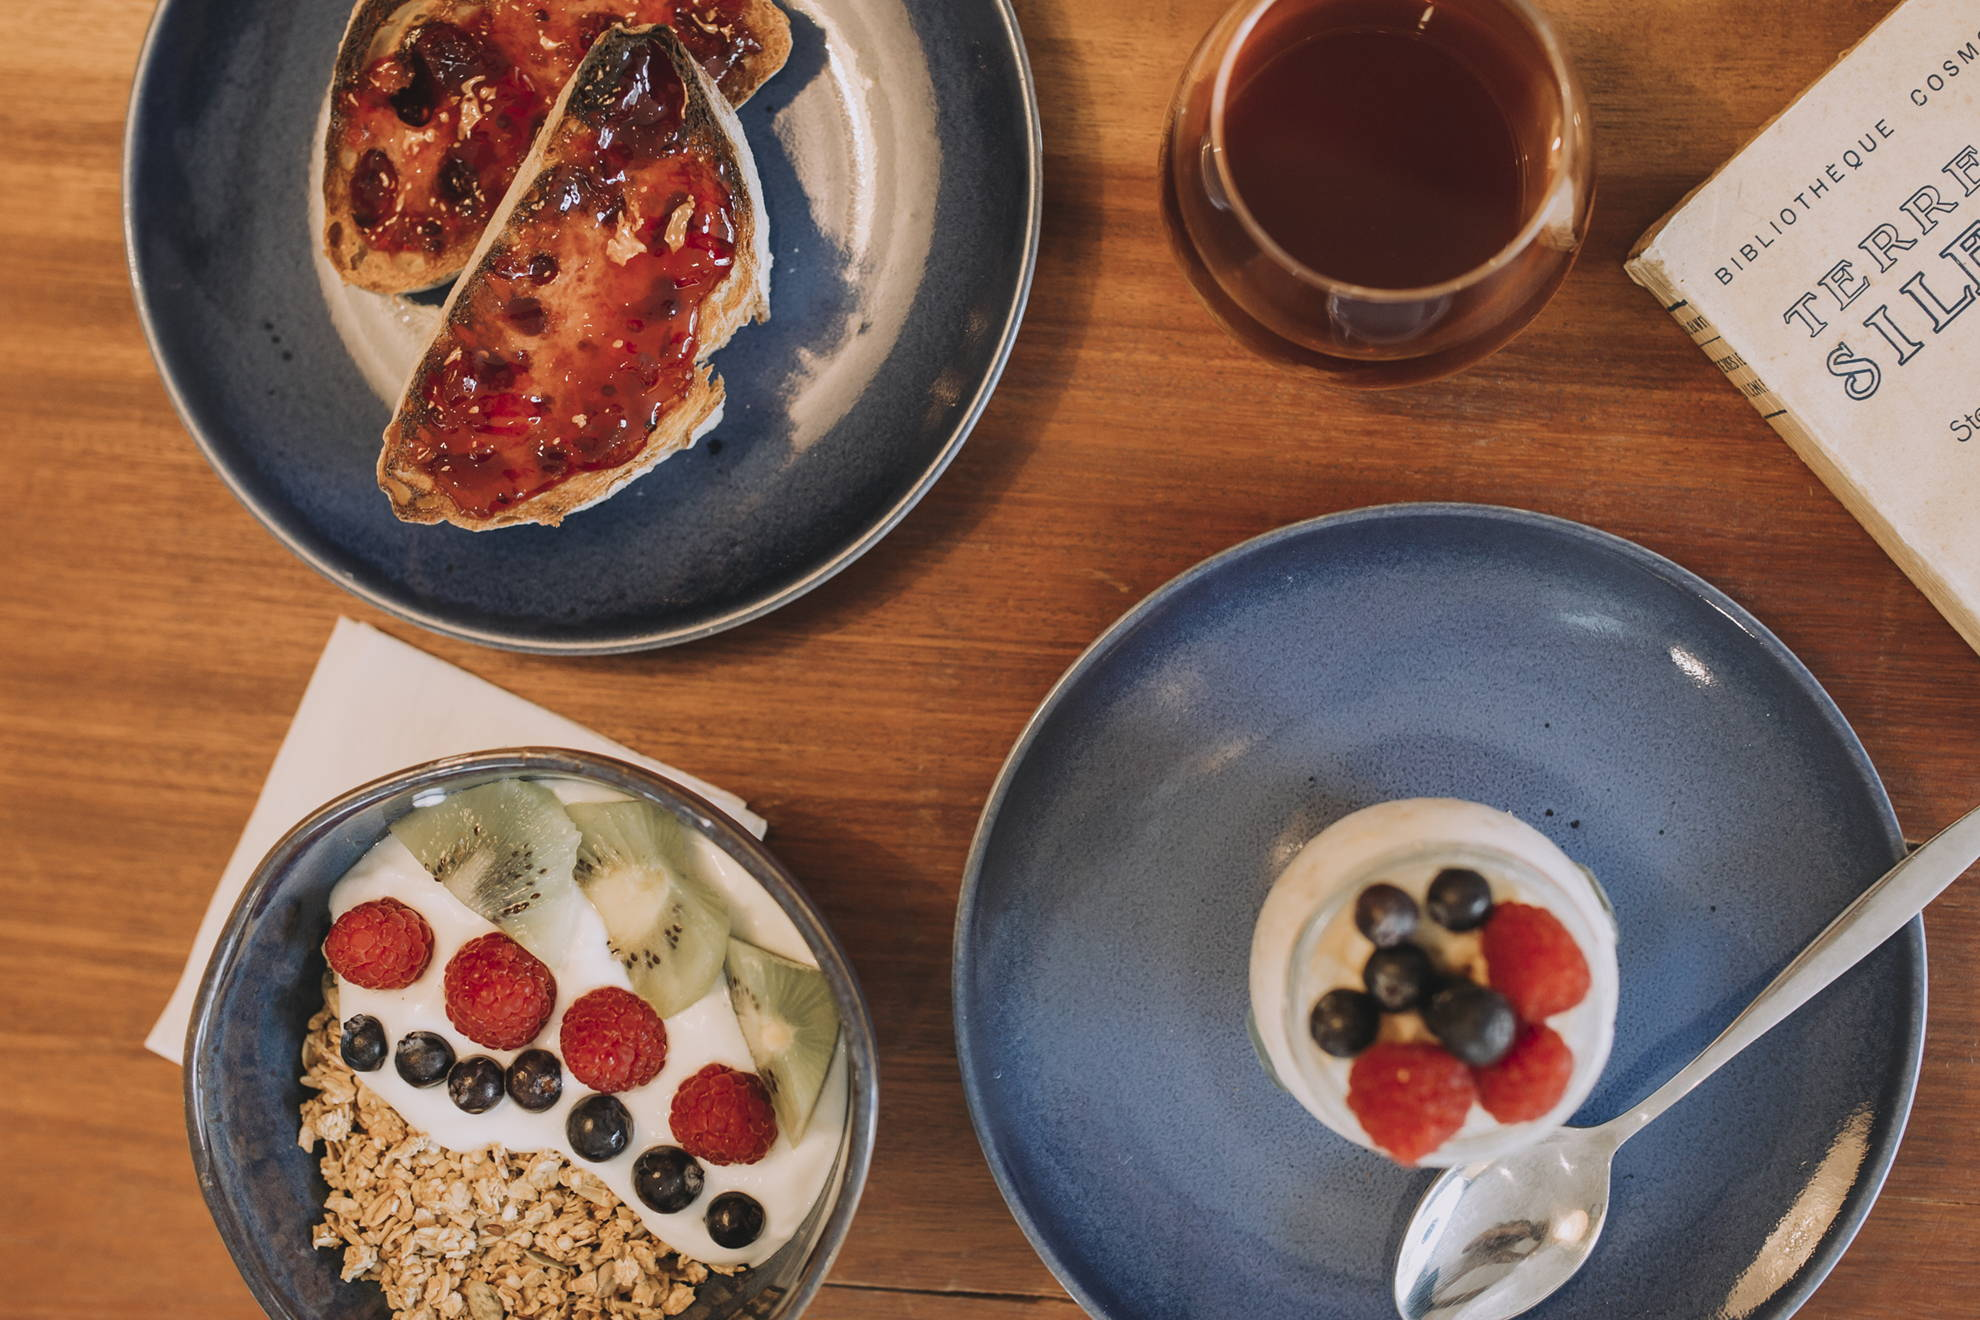 Breakfast options served at SO Coffee Roasters in Porto and Lisbon include toast, oats and yoghurt